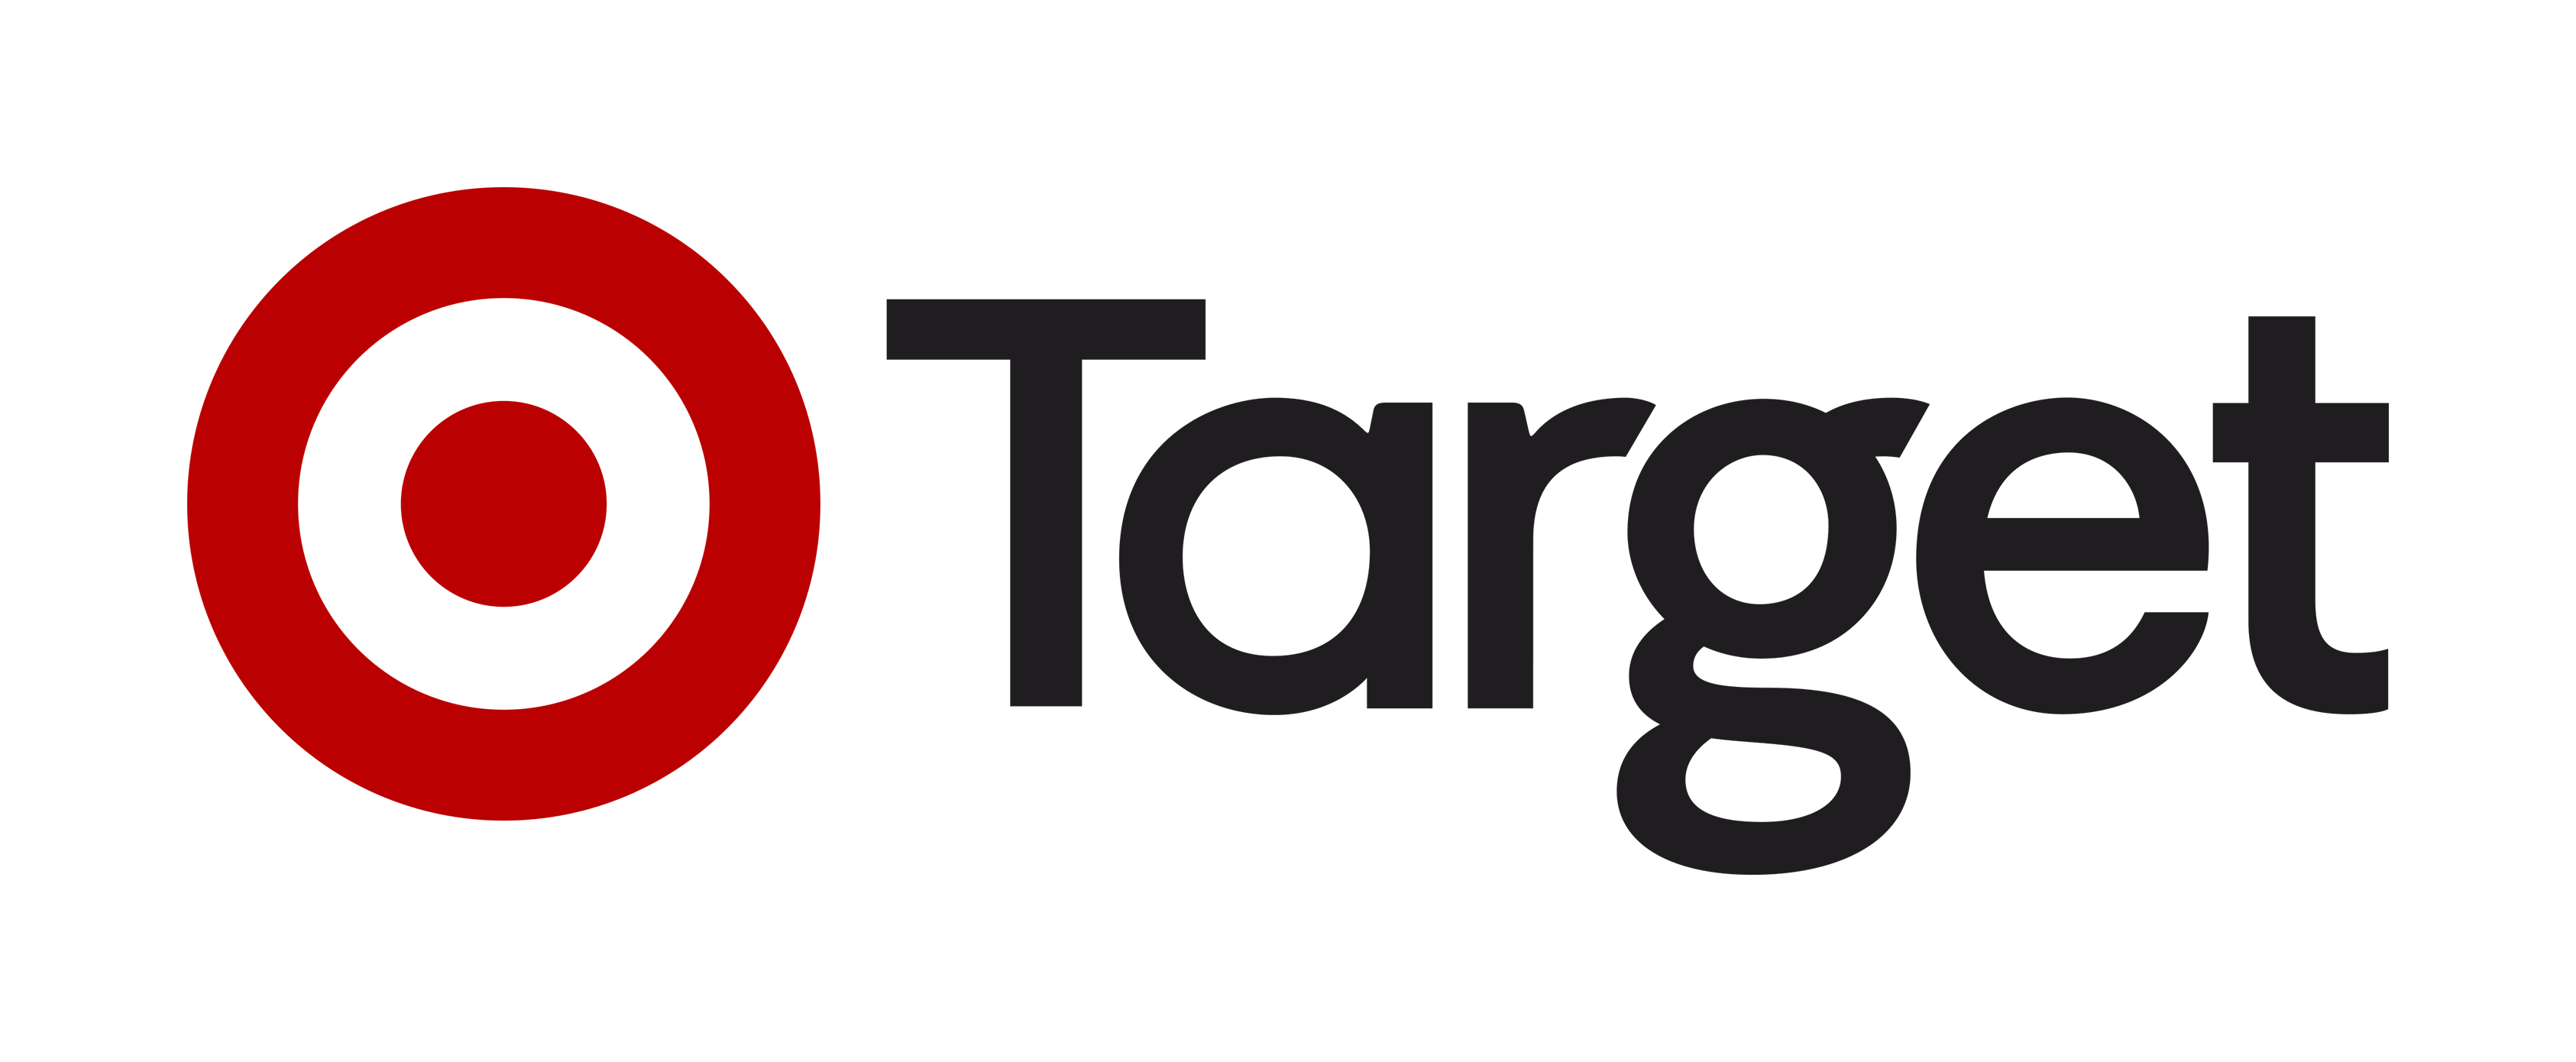 Dec 04,  · Target Corp. Target Corp. engages in owning and operating of general merchandise stores. It also operates SuperTarget stores with a line of food and general merchandise items and offers an.